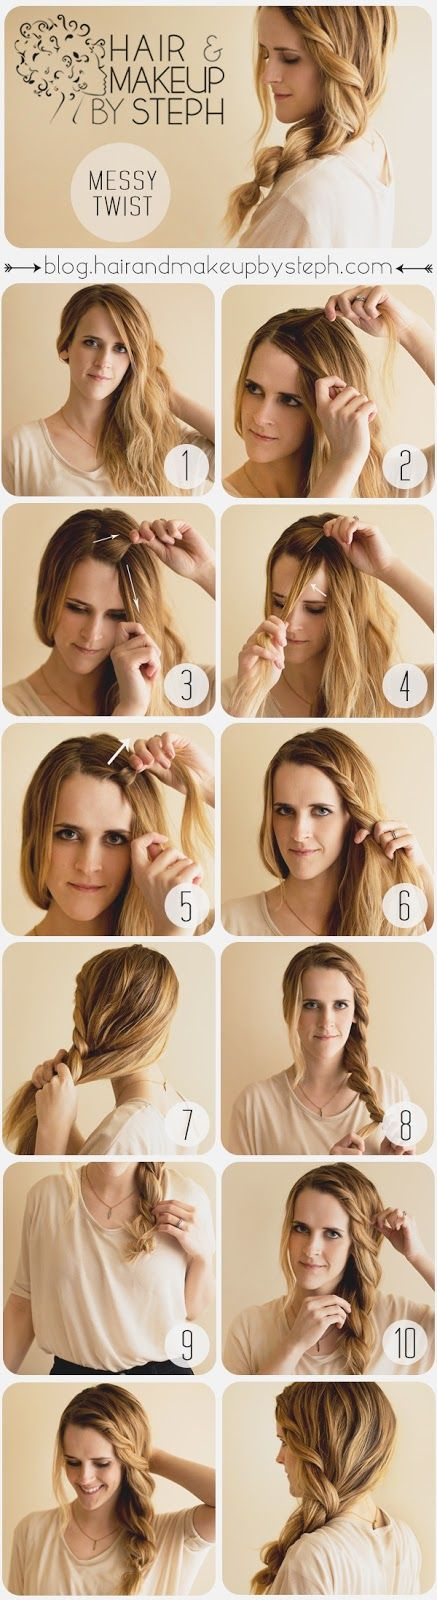 20 Cute And Easy Hairstyle Ideas And Tutorials Hair Styles Long Hair Styles Cool Hairstyles